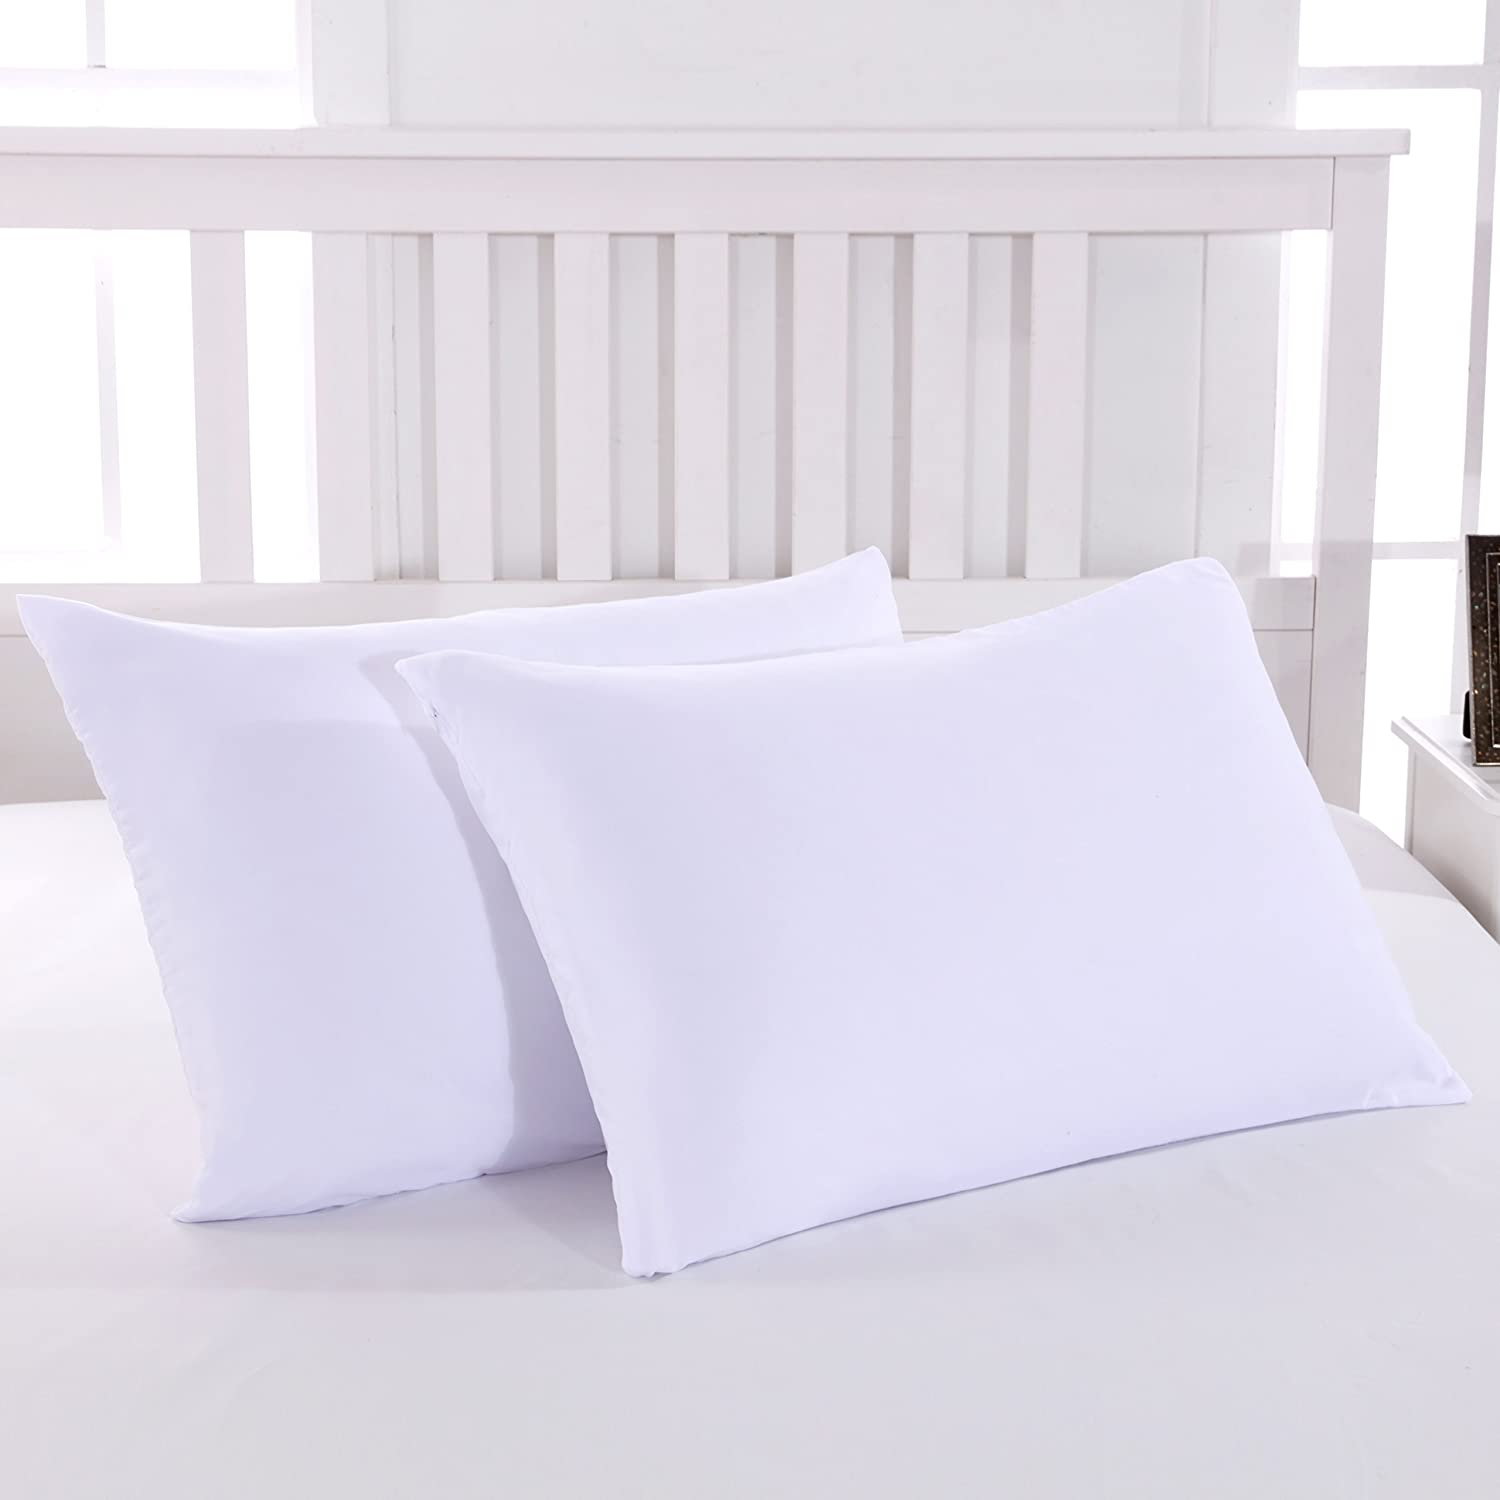 Mohap Standard Zippered Housewife Pillowcases 50X75CM Pack of 2 Non-Iron Brushed Microfiber Pillow Cover Pink